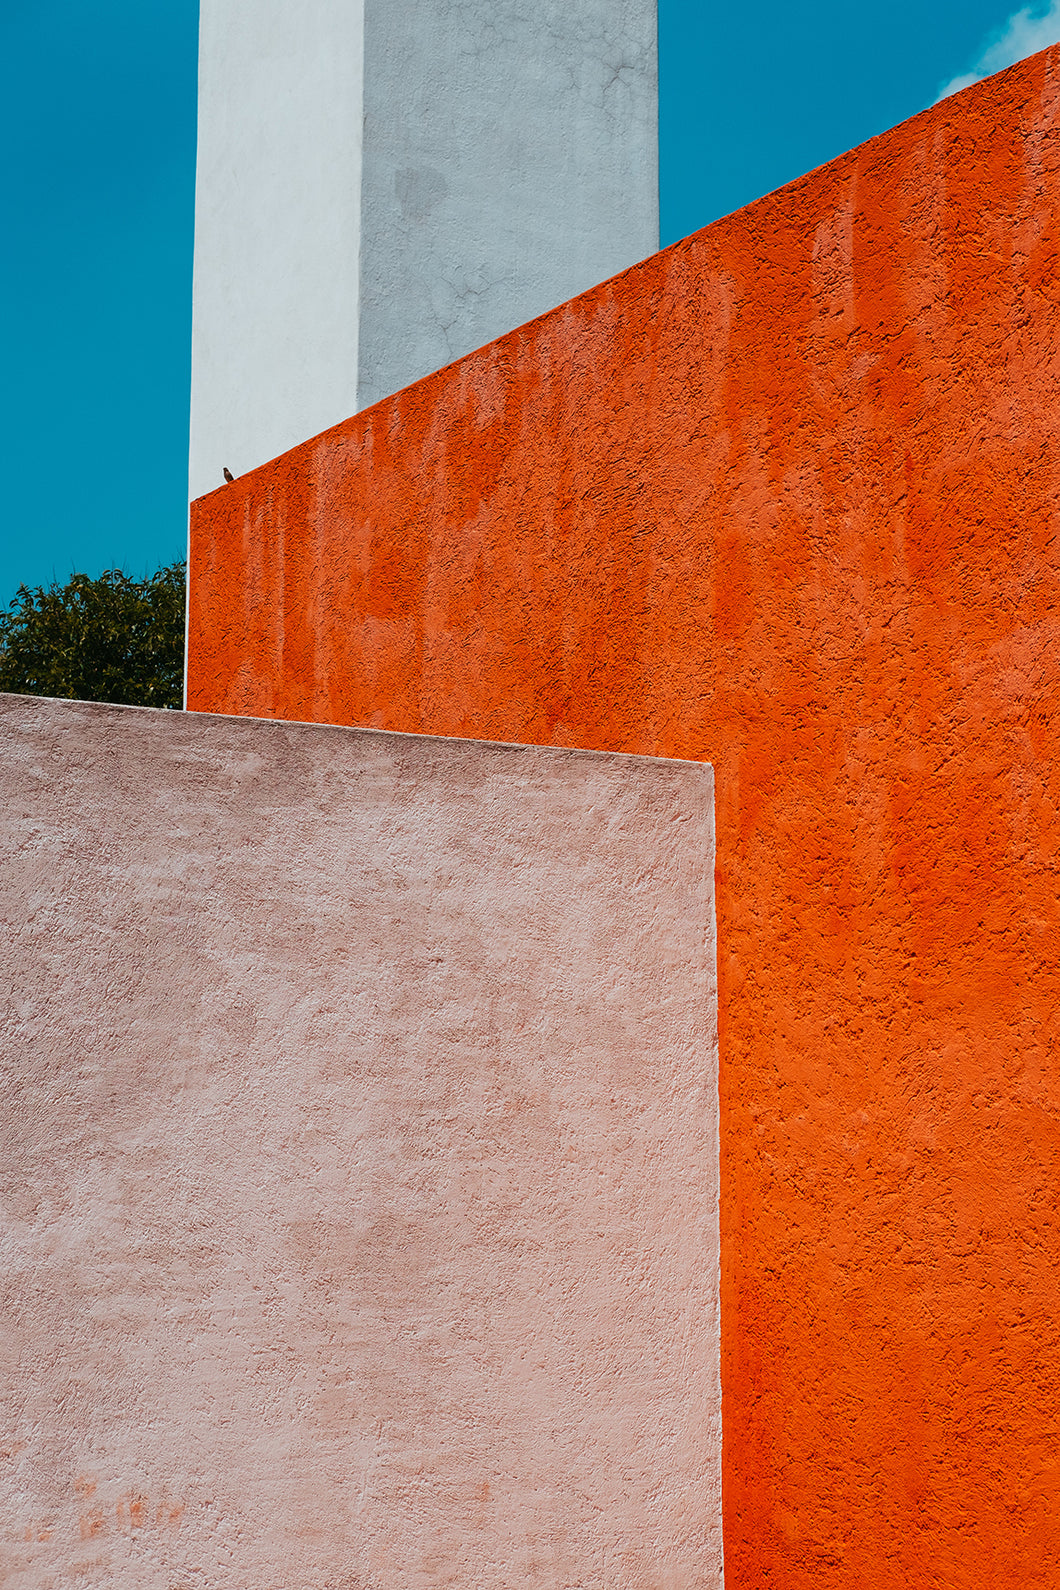 Architectural Geometry in Mexico City with Red, White and Pink Walls Close Up